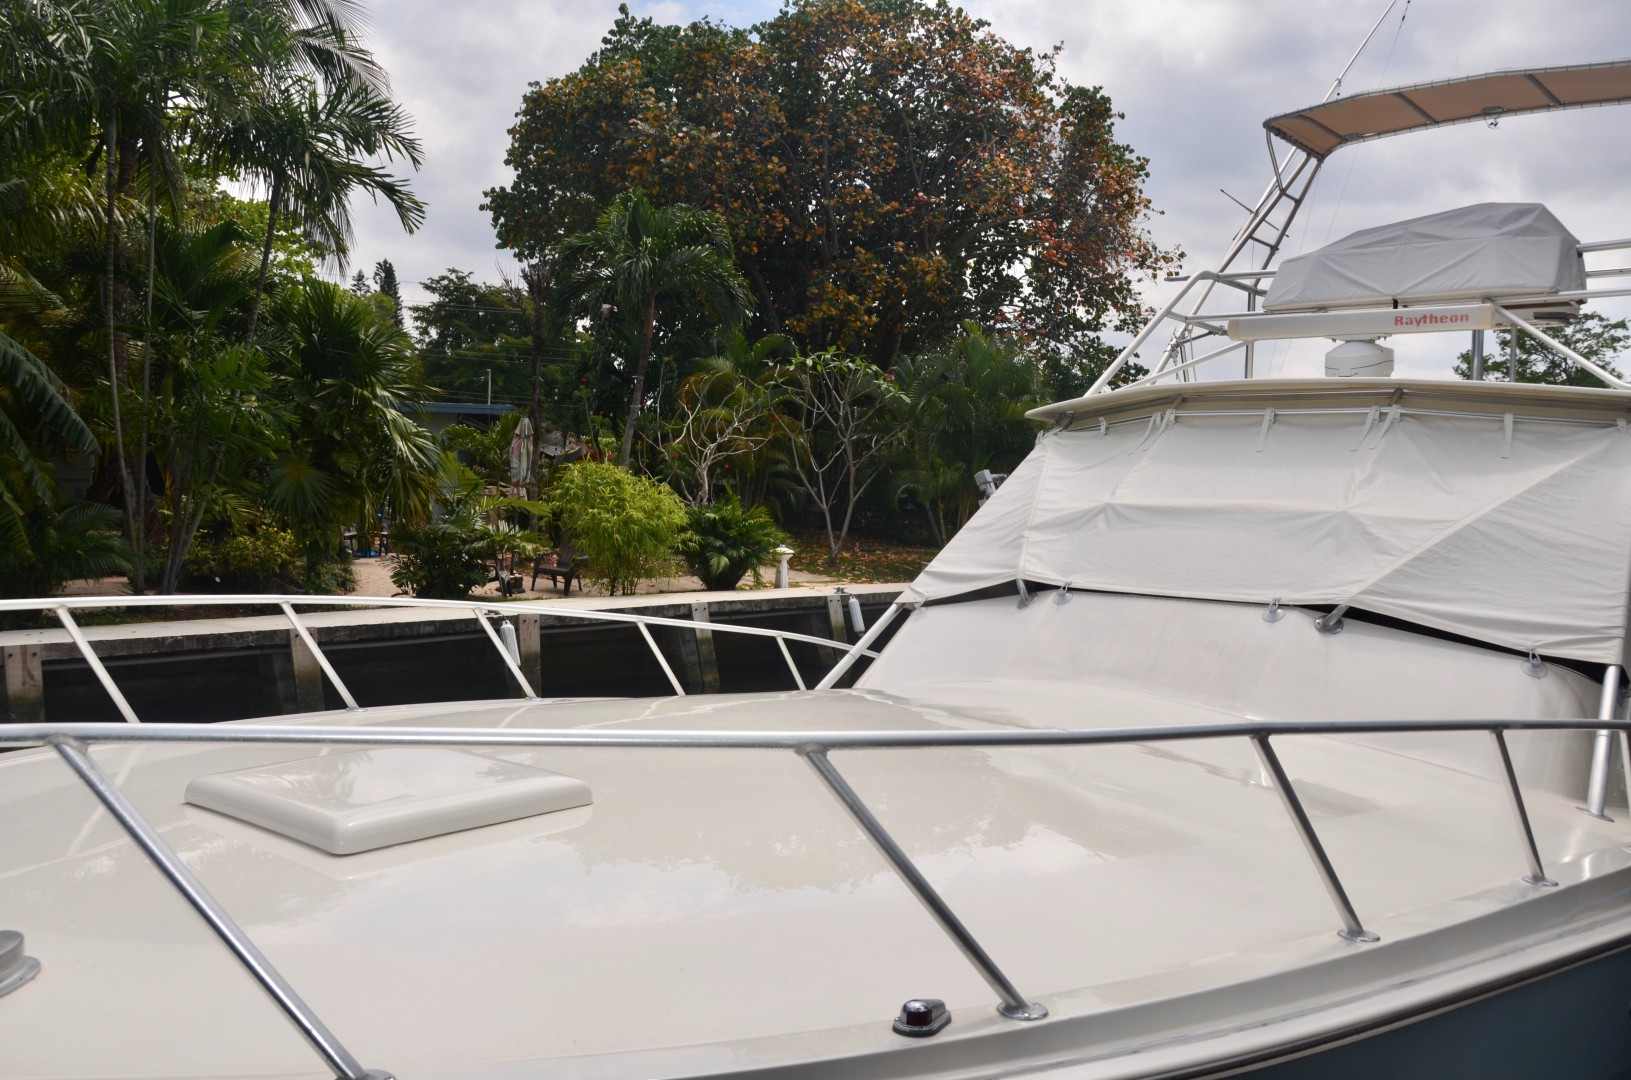 Topaz 39 - Perfect Catch - Foredeck